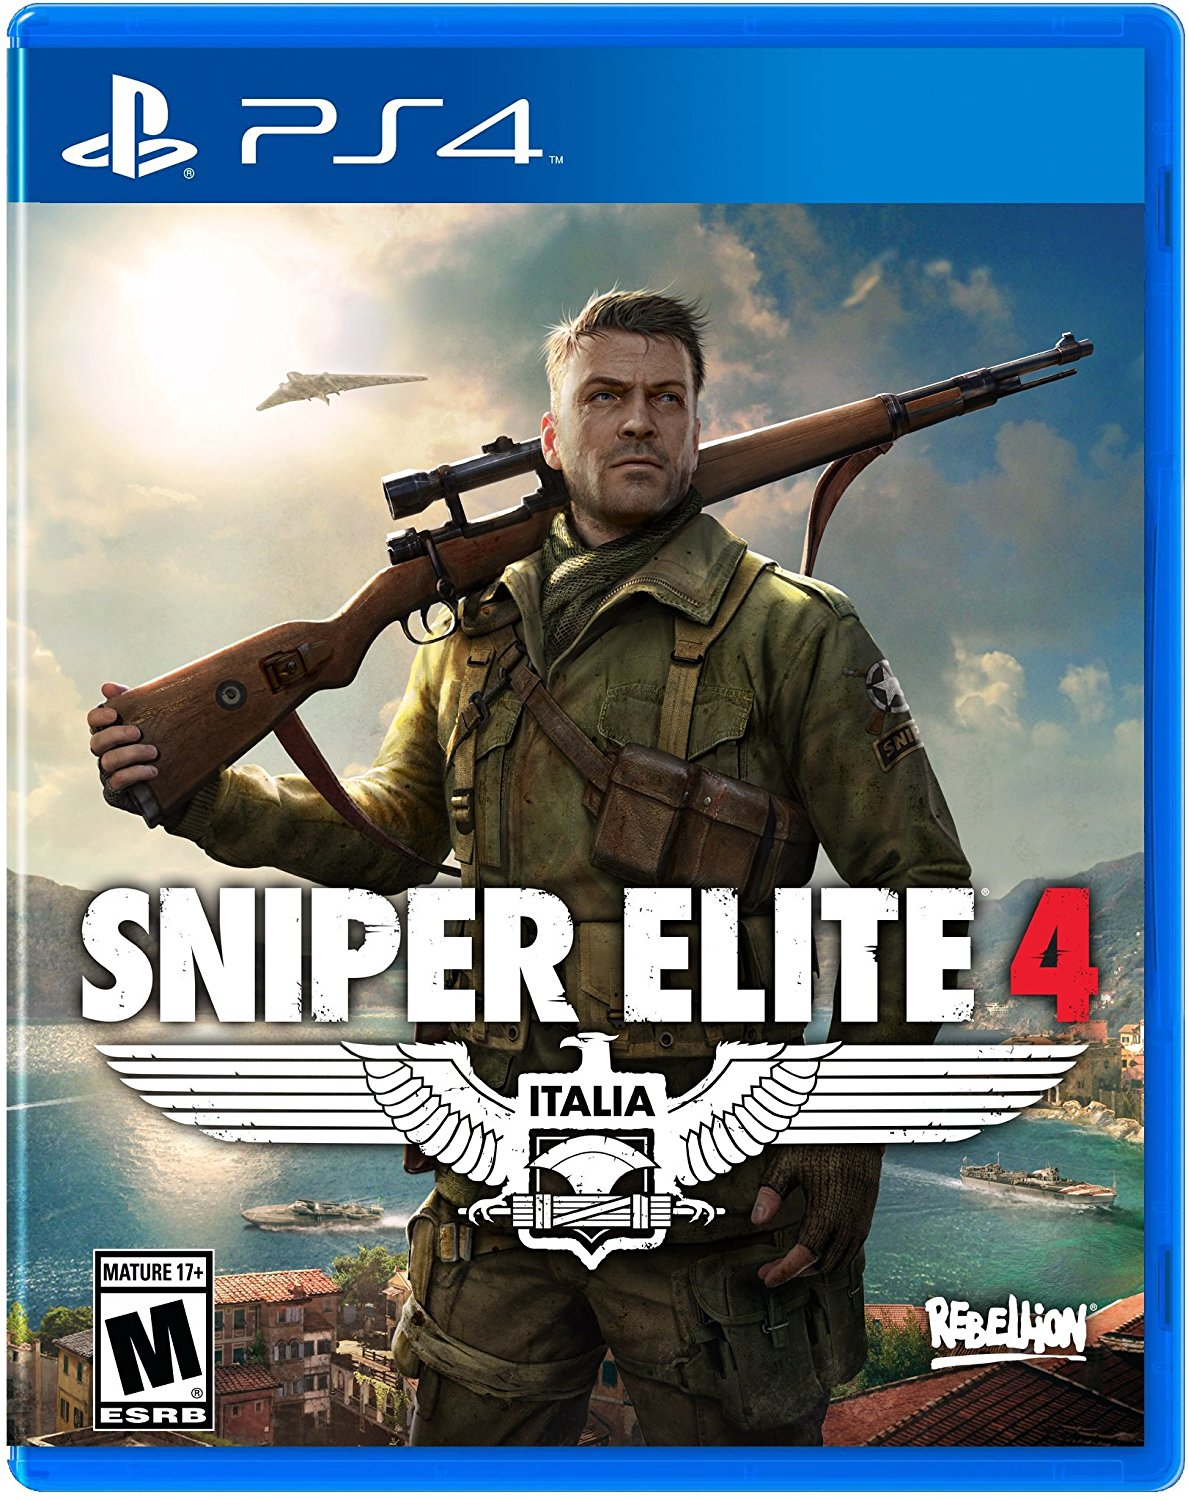 PS4 Sniper Elite 4 Português (PlayStation 4)